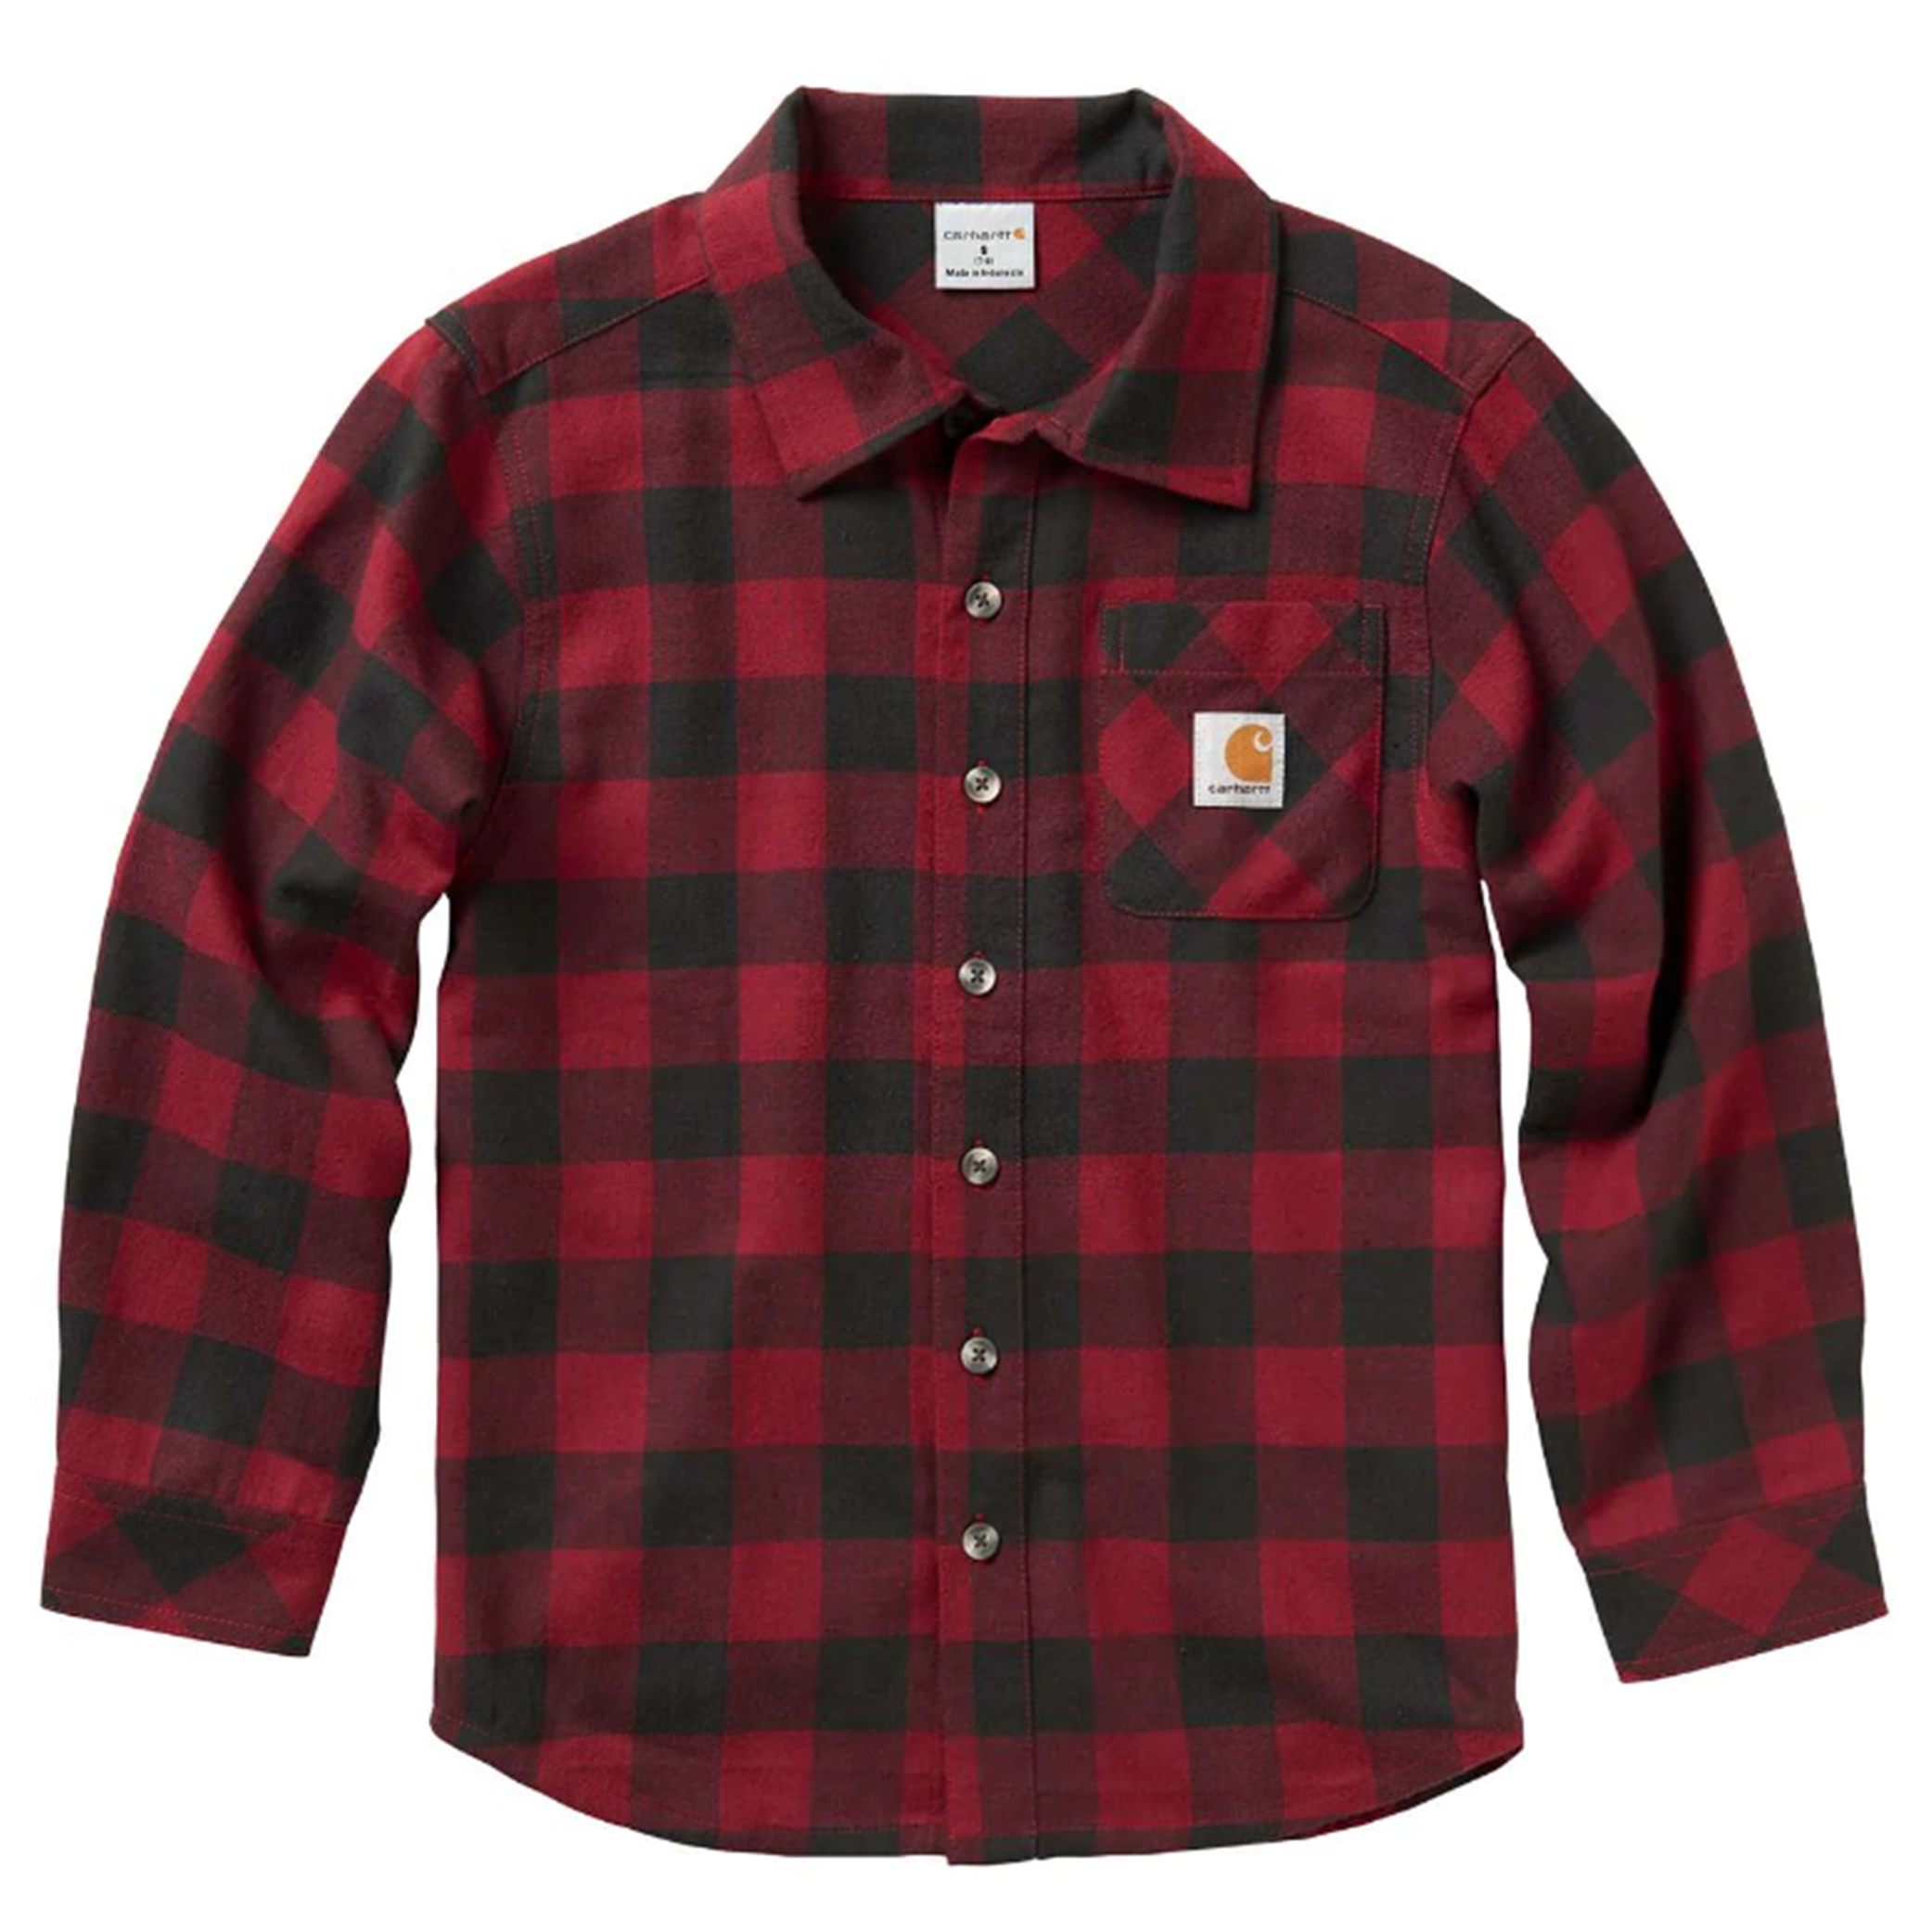 Boy's Shirt Long Sleeve Plaid Shirt, Red/Black, swatch